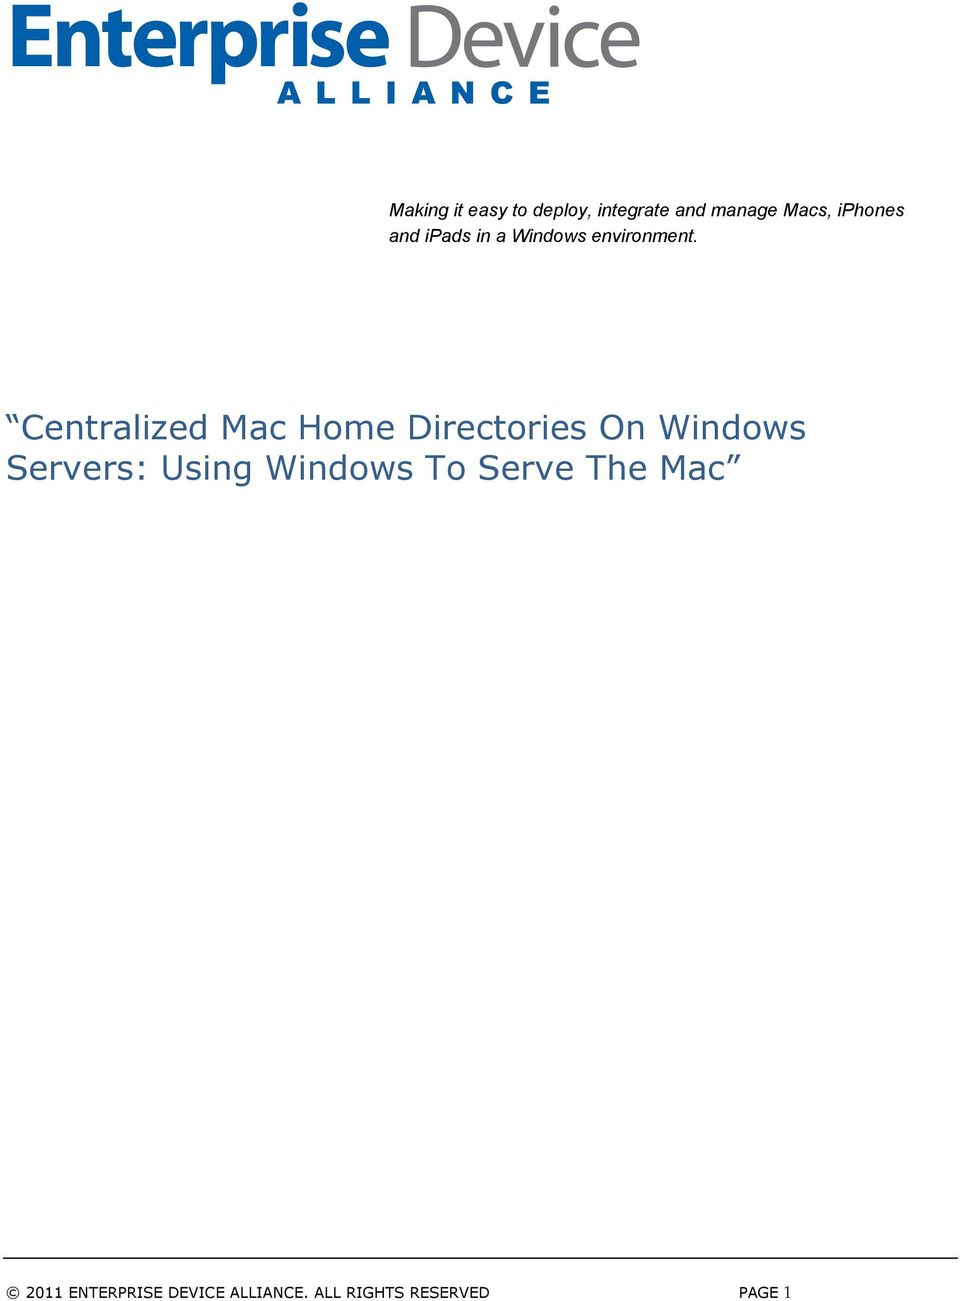 Centralized Mac Home Directories On Windows Servers: Using